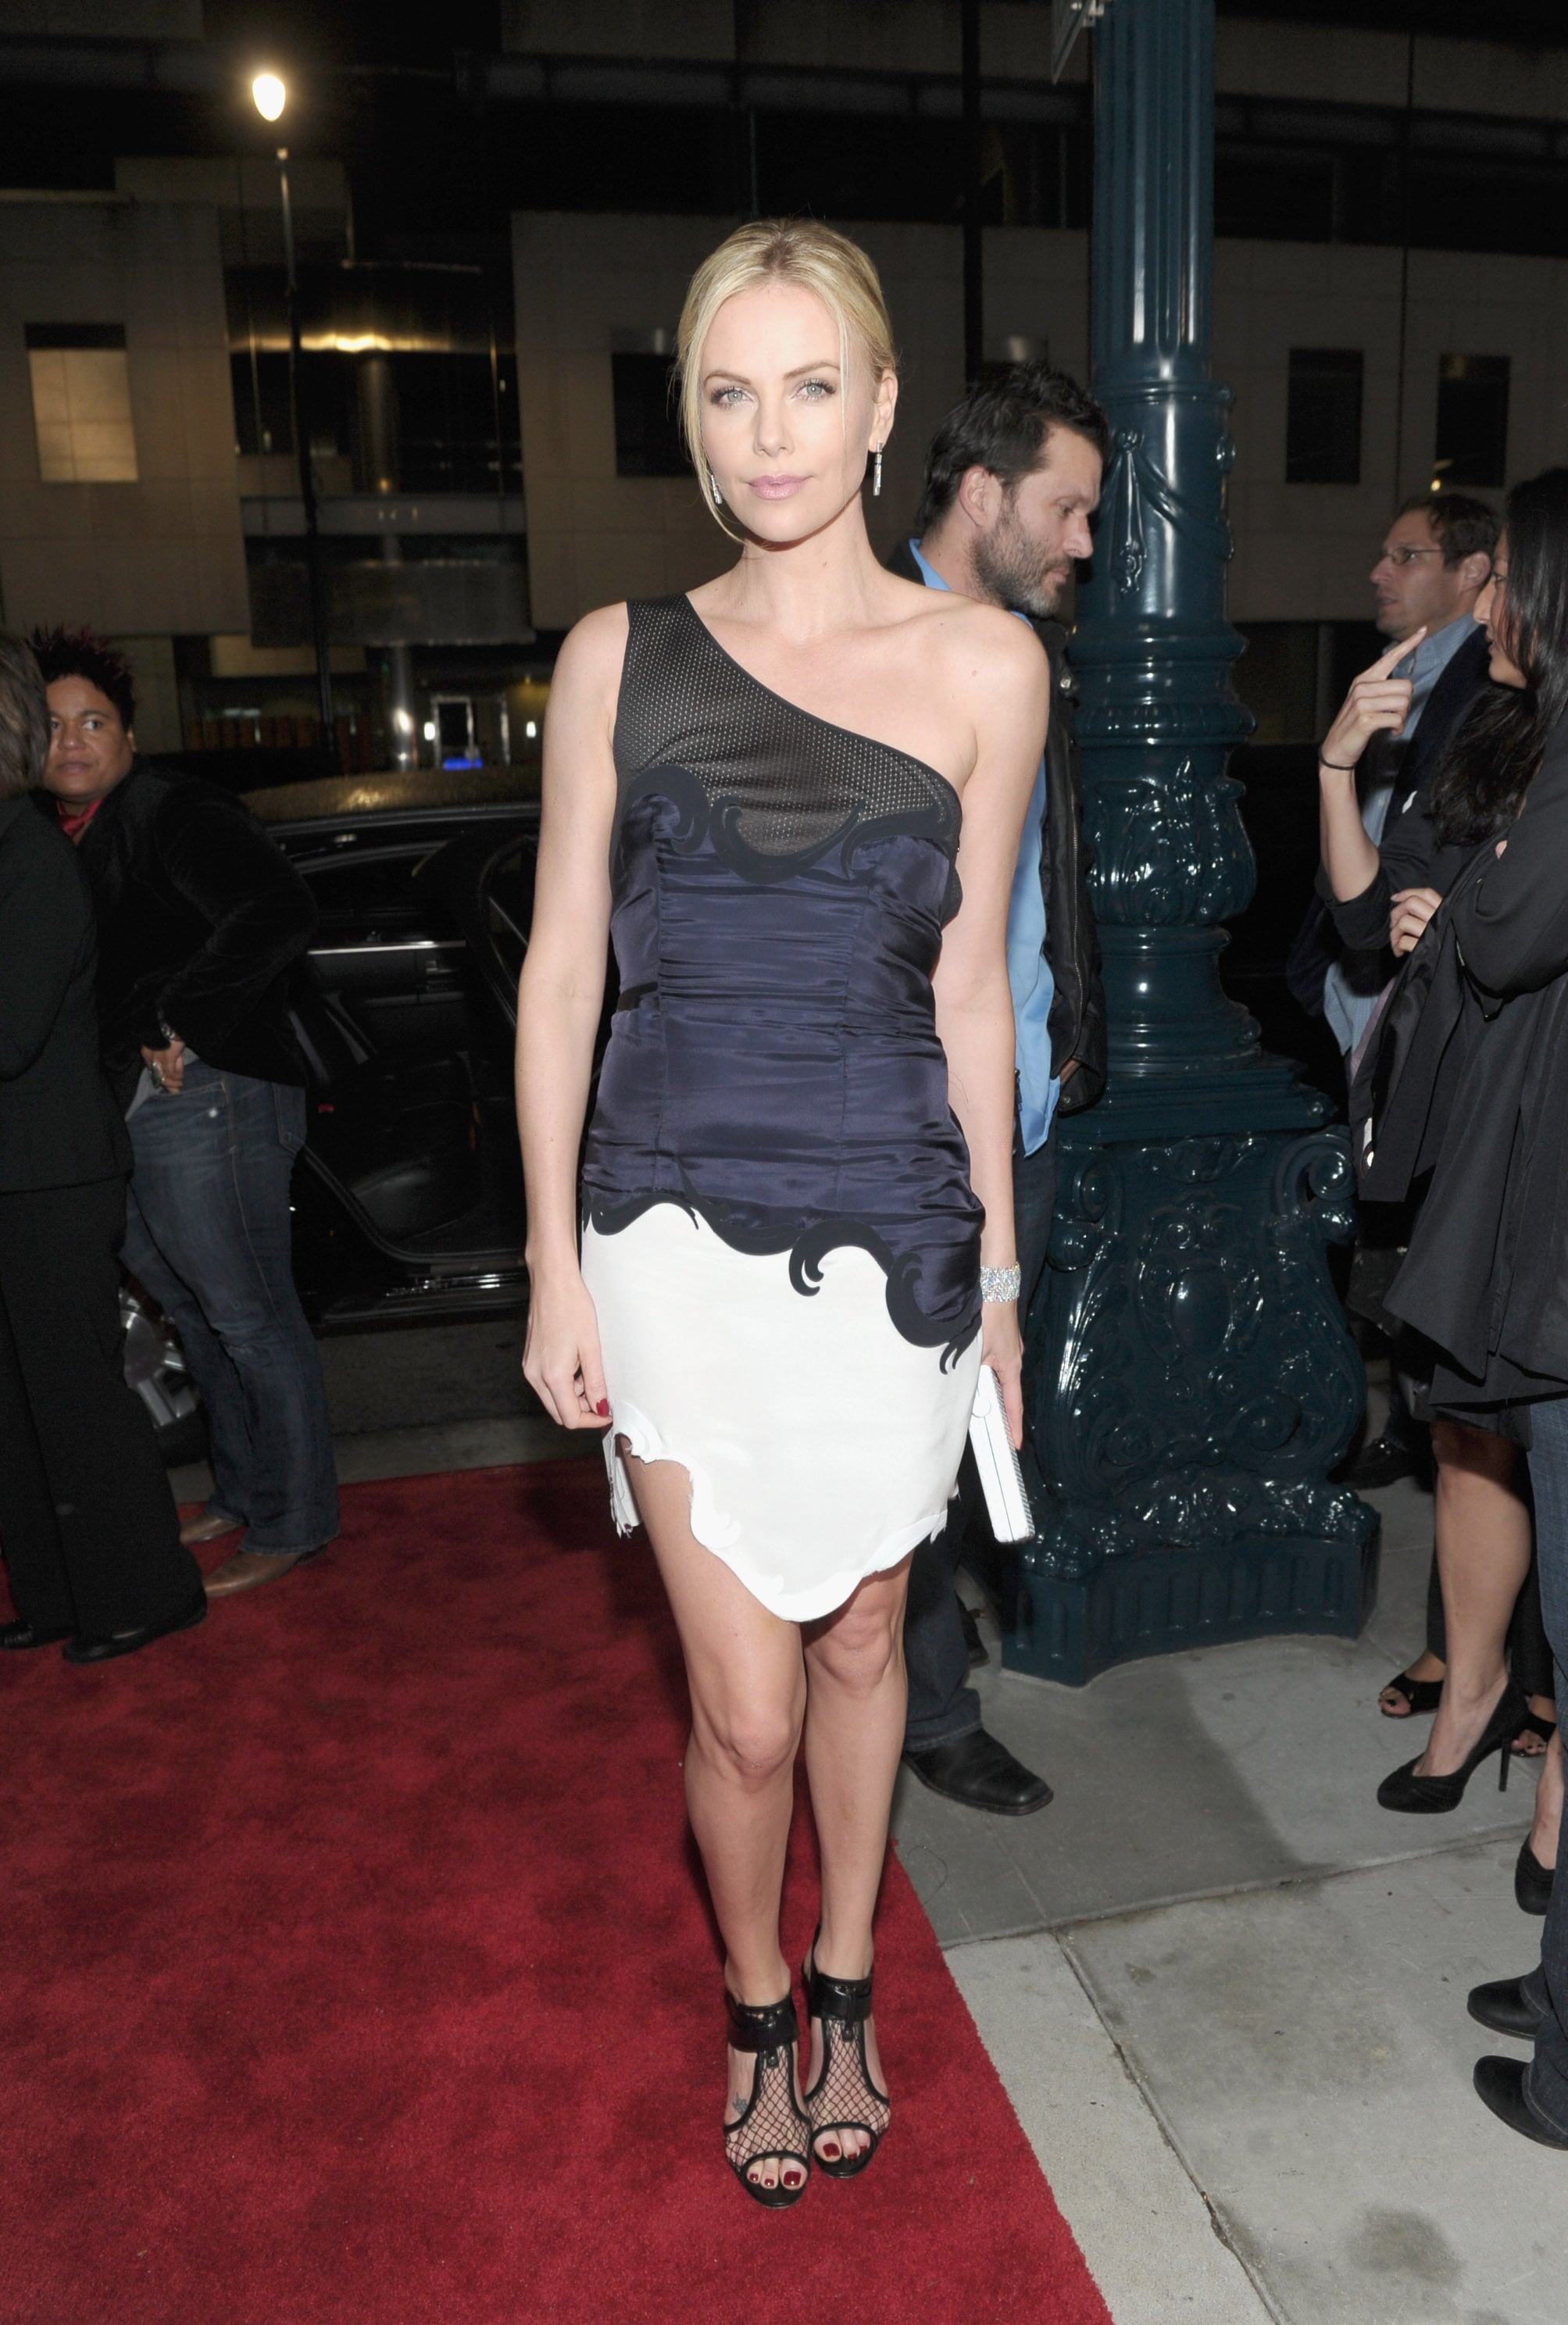 Charlize Theron in a colorblocked dress at the LA premiere of Young Adult.